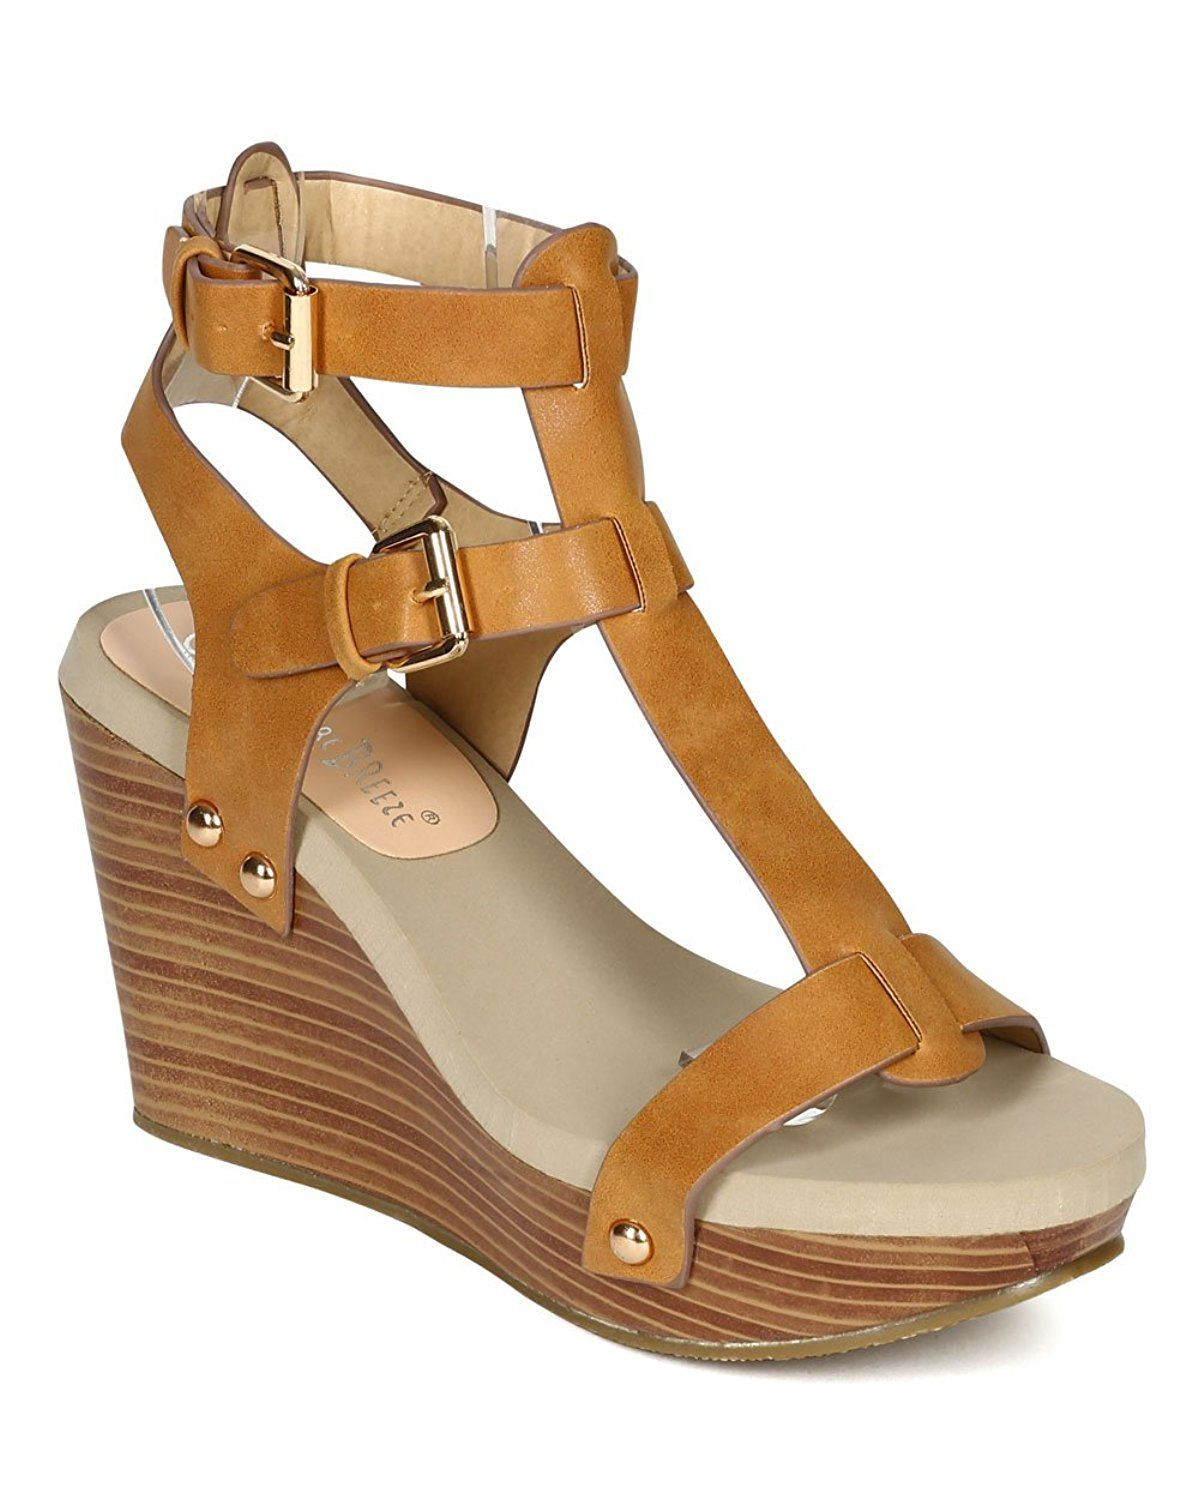 0806e8c1f890 Nature Breeze Women CD42 Open Toe Studded Wooden Platform Wedge Sandal -  Camel -- You can get more details by clicking on the image.  womensandals